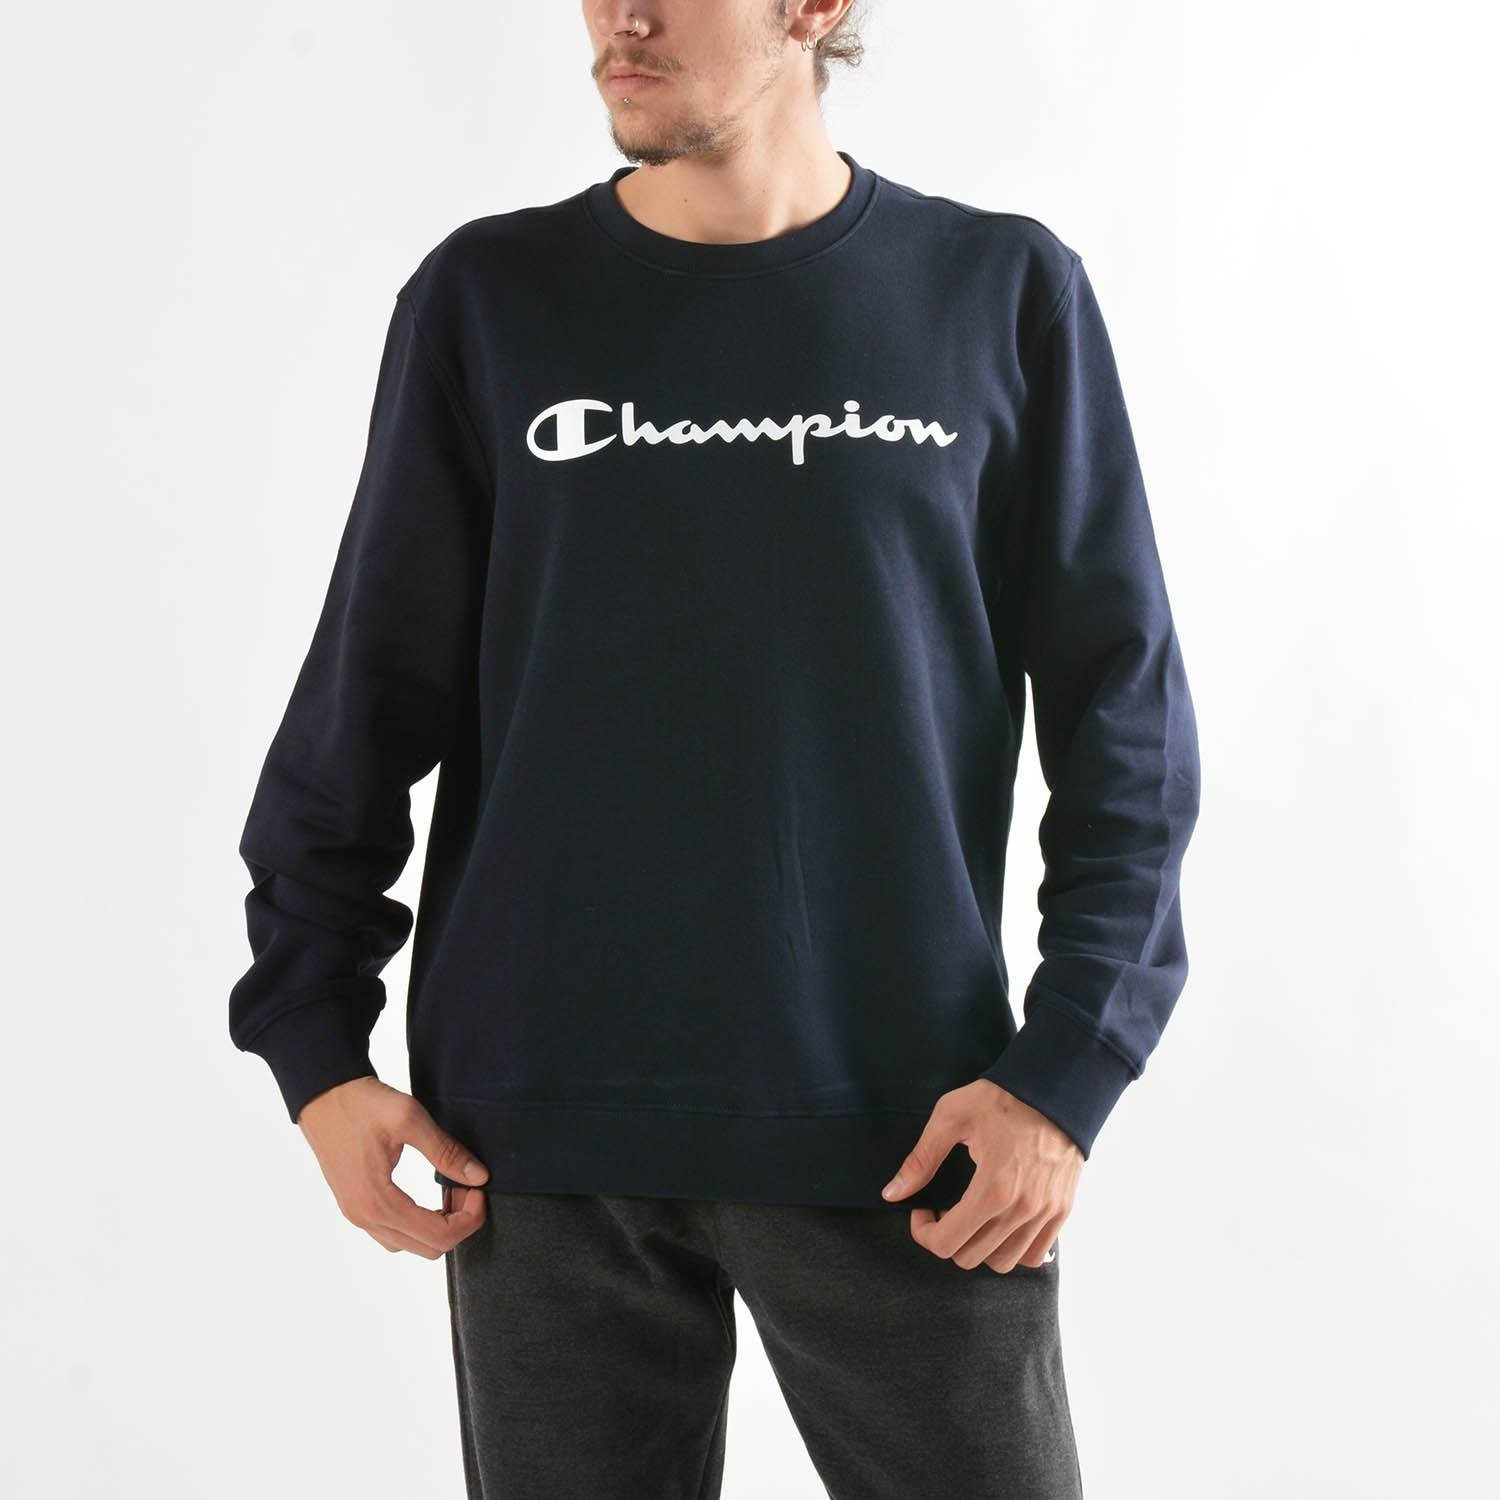 Champion Crewneck Sweatshirt (9000018060_1865)